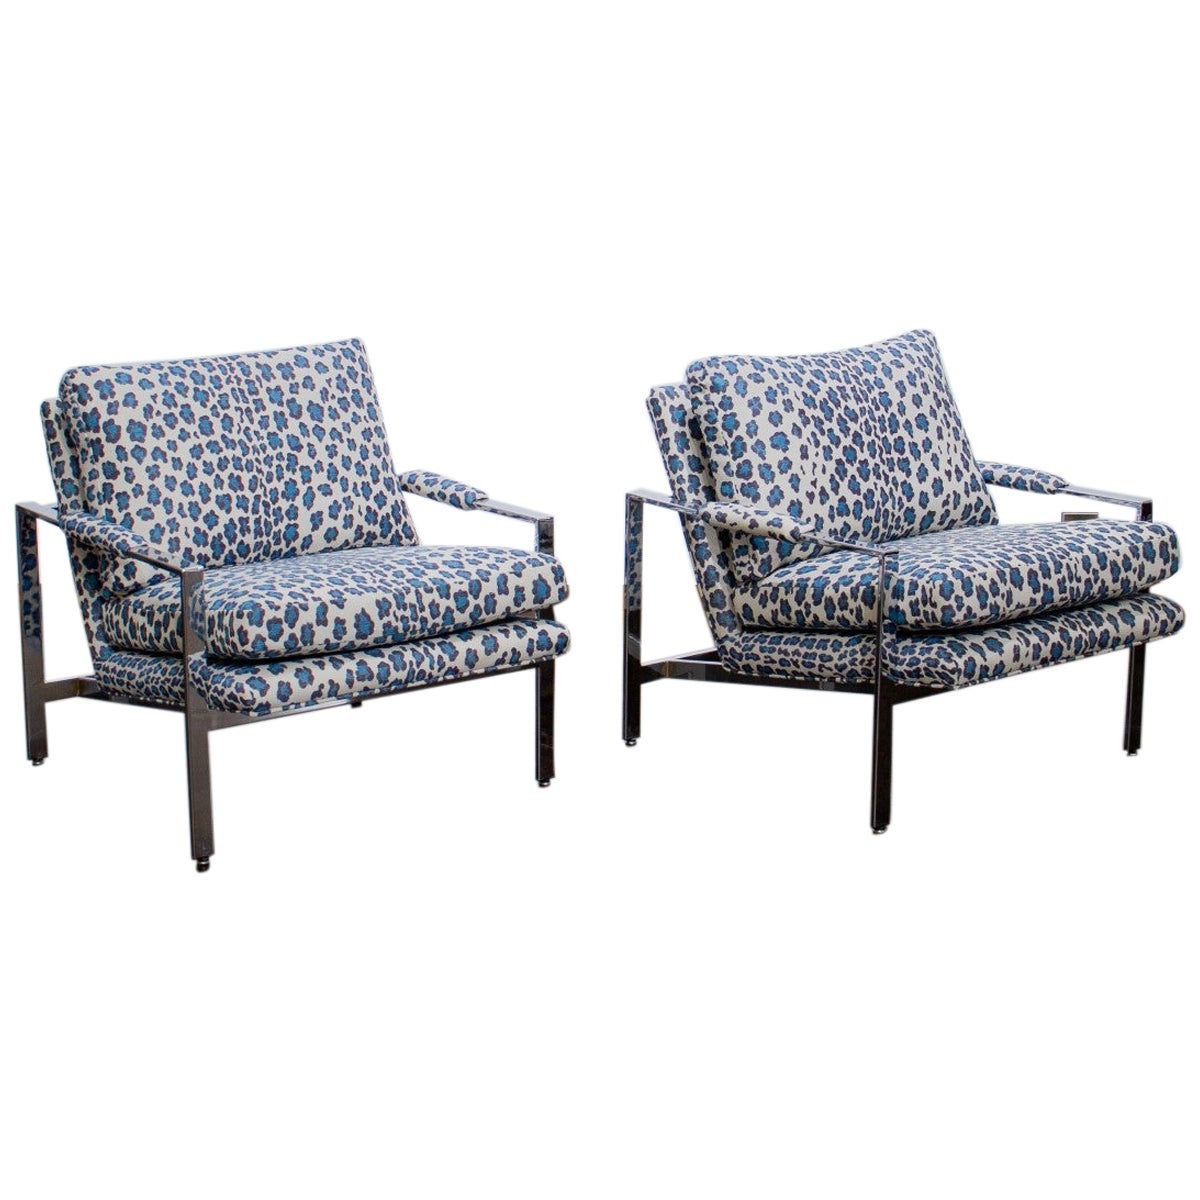 Pair of 1970s Nickel Framed Lounge Chairs